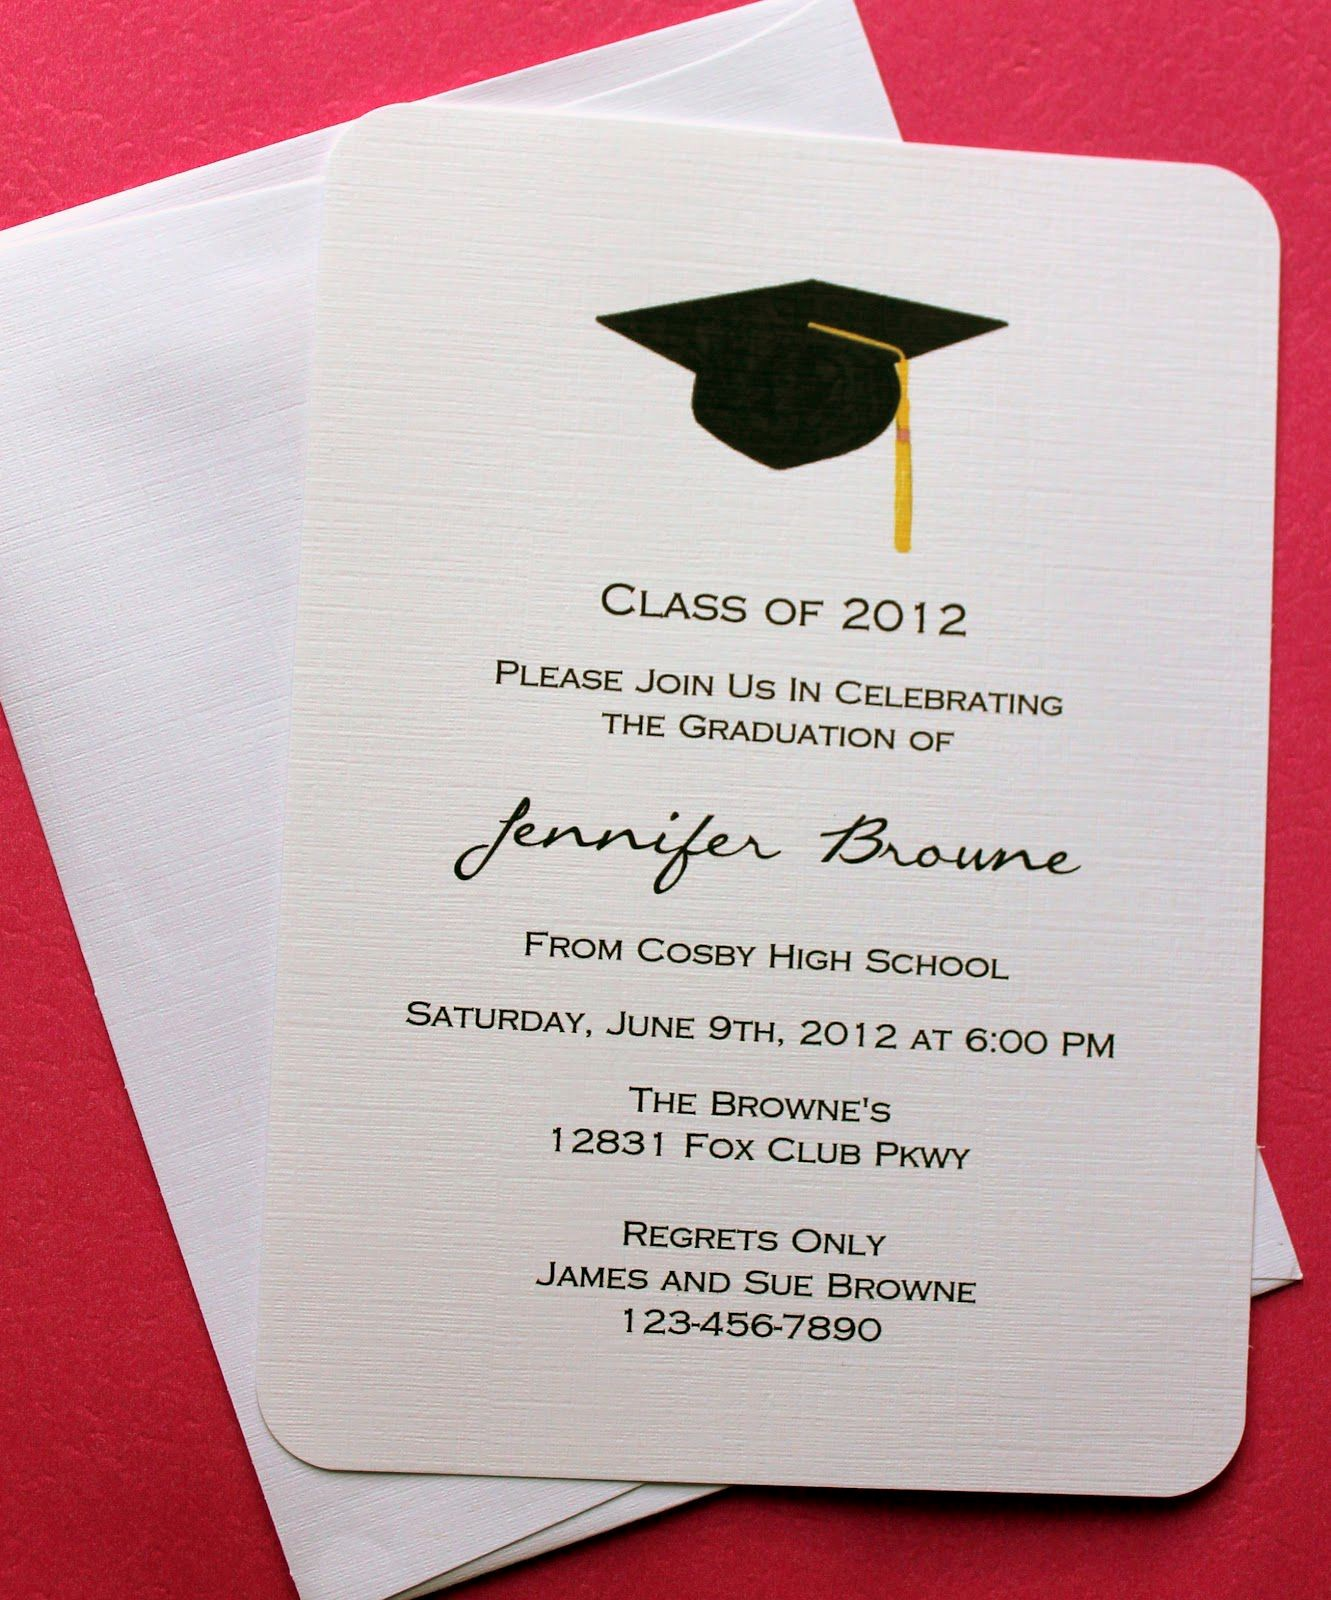 Microsoft Word Template for Invitations Lovely Graduation Invitation Template Graduation Invitation